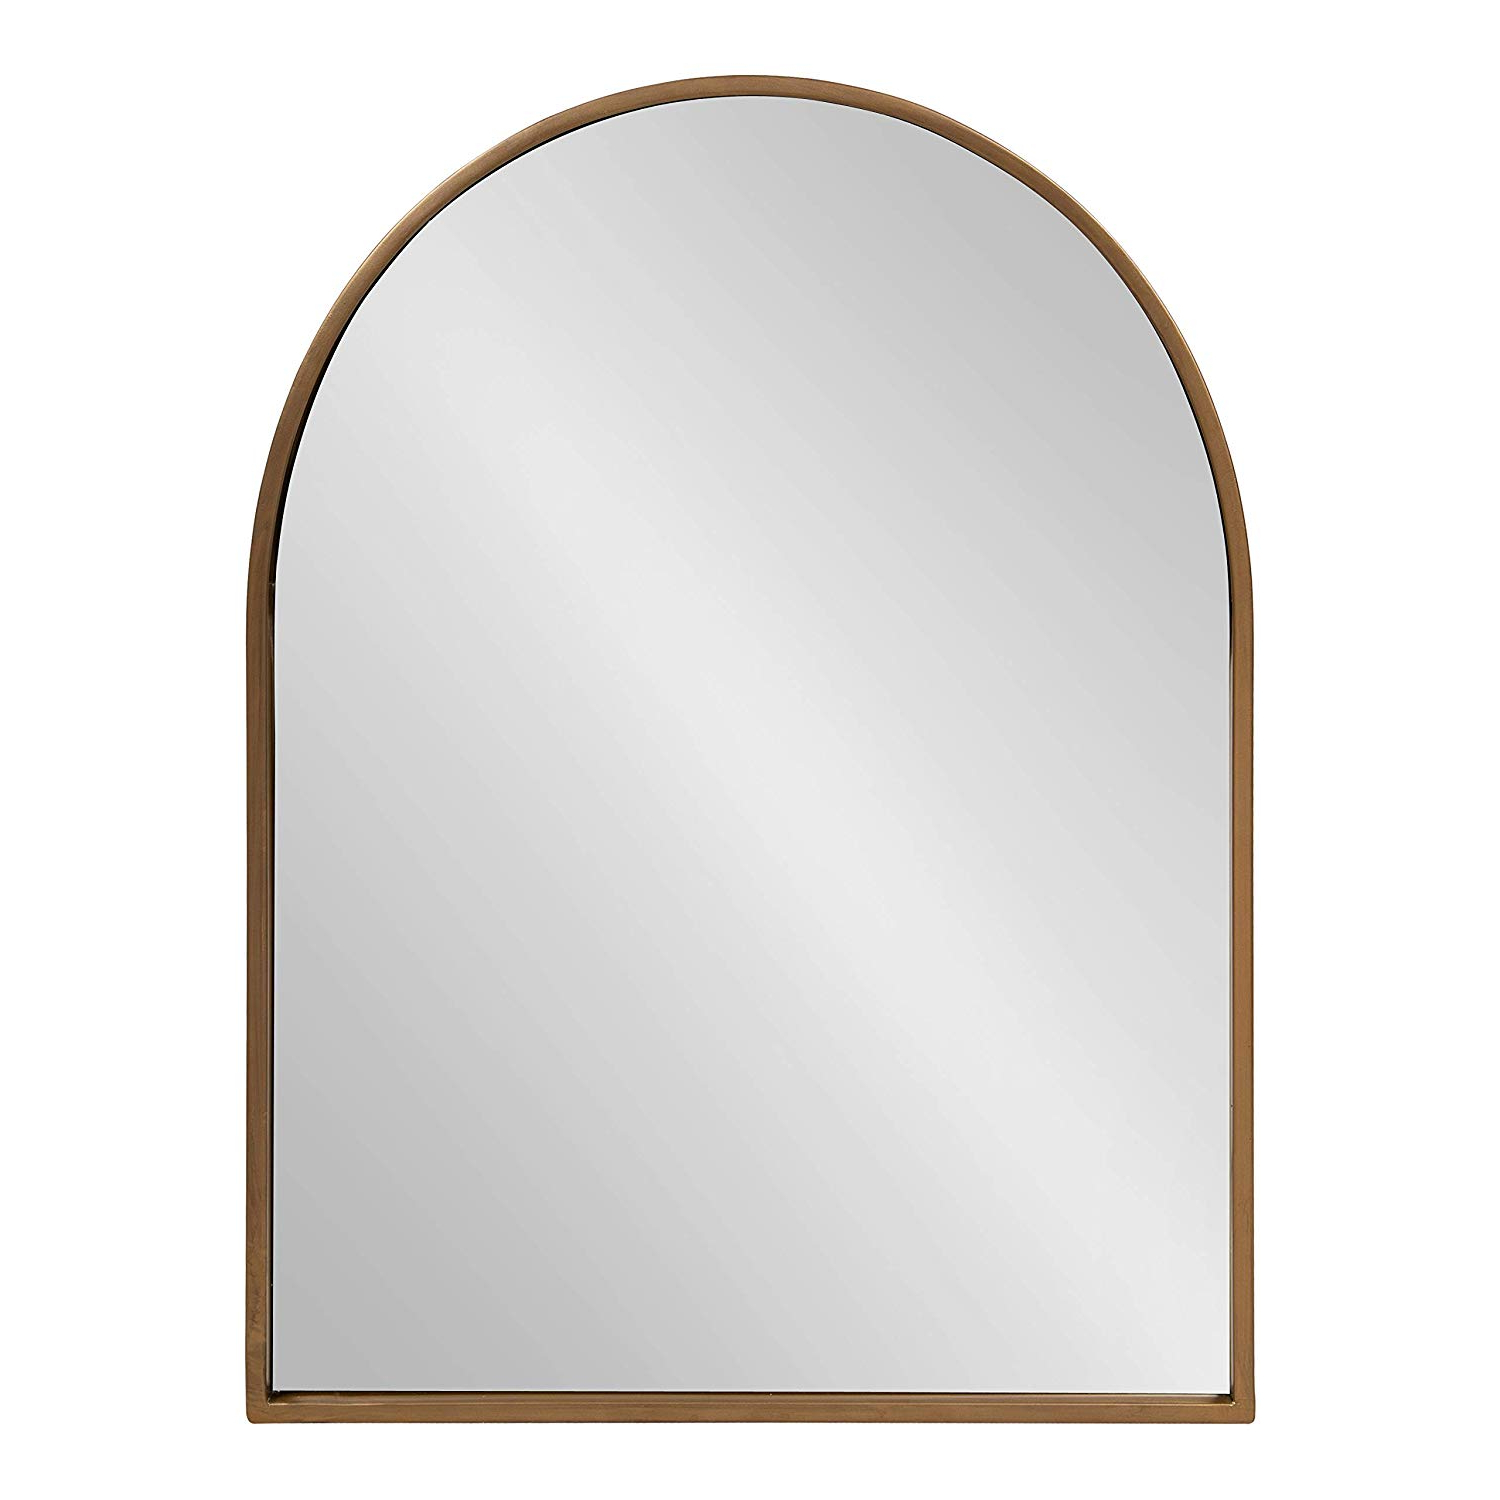 Most Current Gold Arch Wall Mirrors Inside Kate And Laurel Valenti Metal Frame Arch Wall Mirror, Gold, 24x (View 4 of 20)